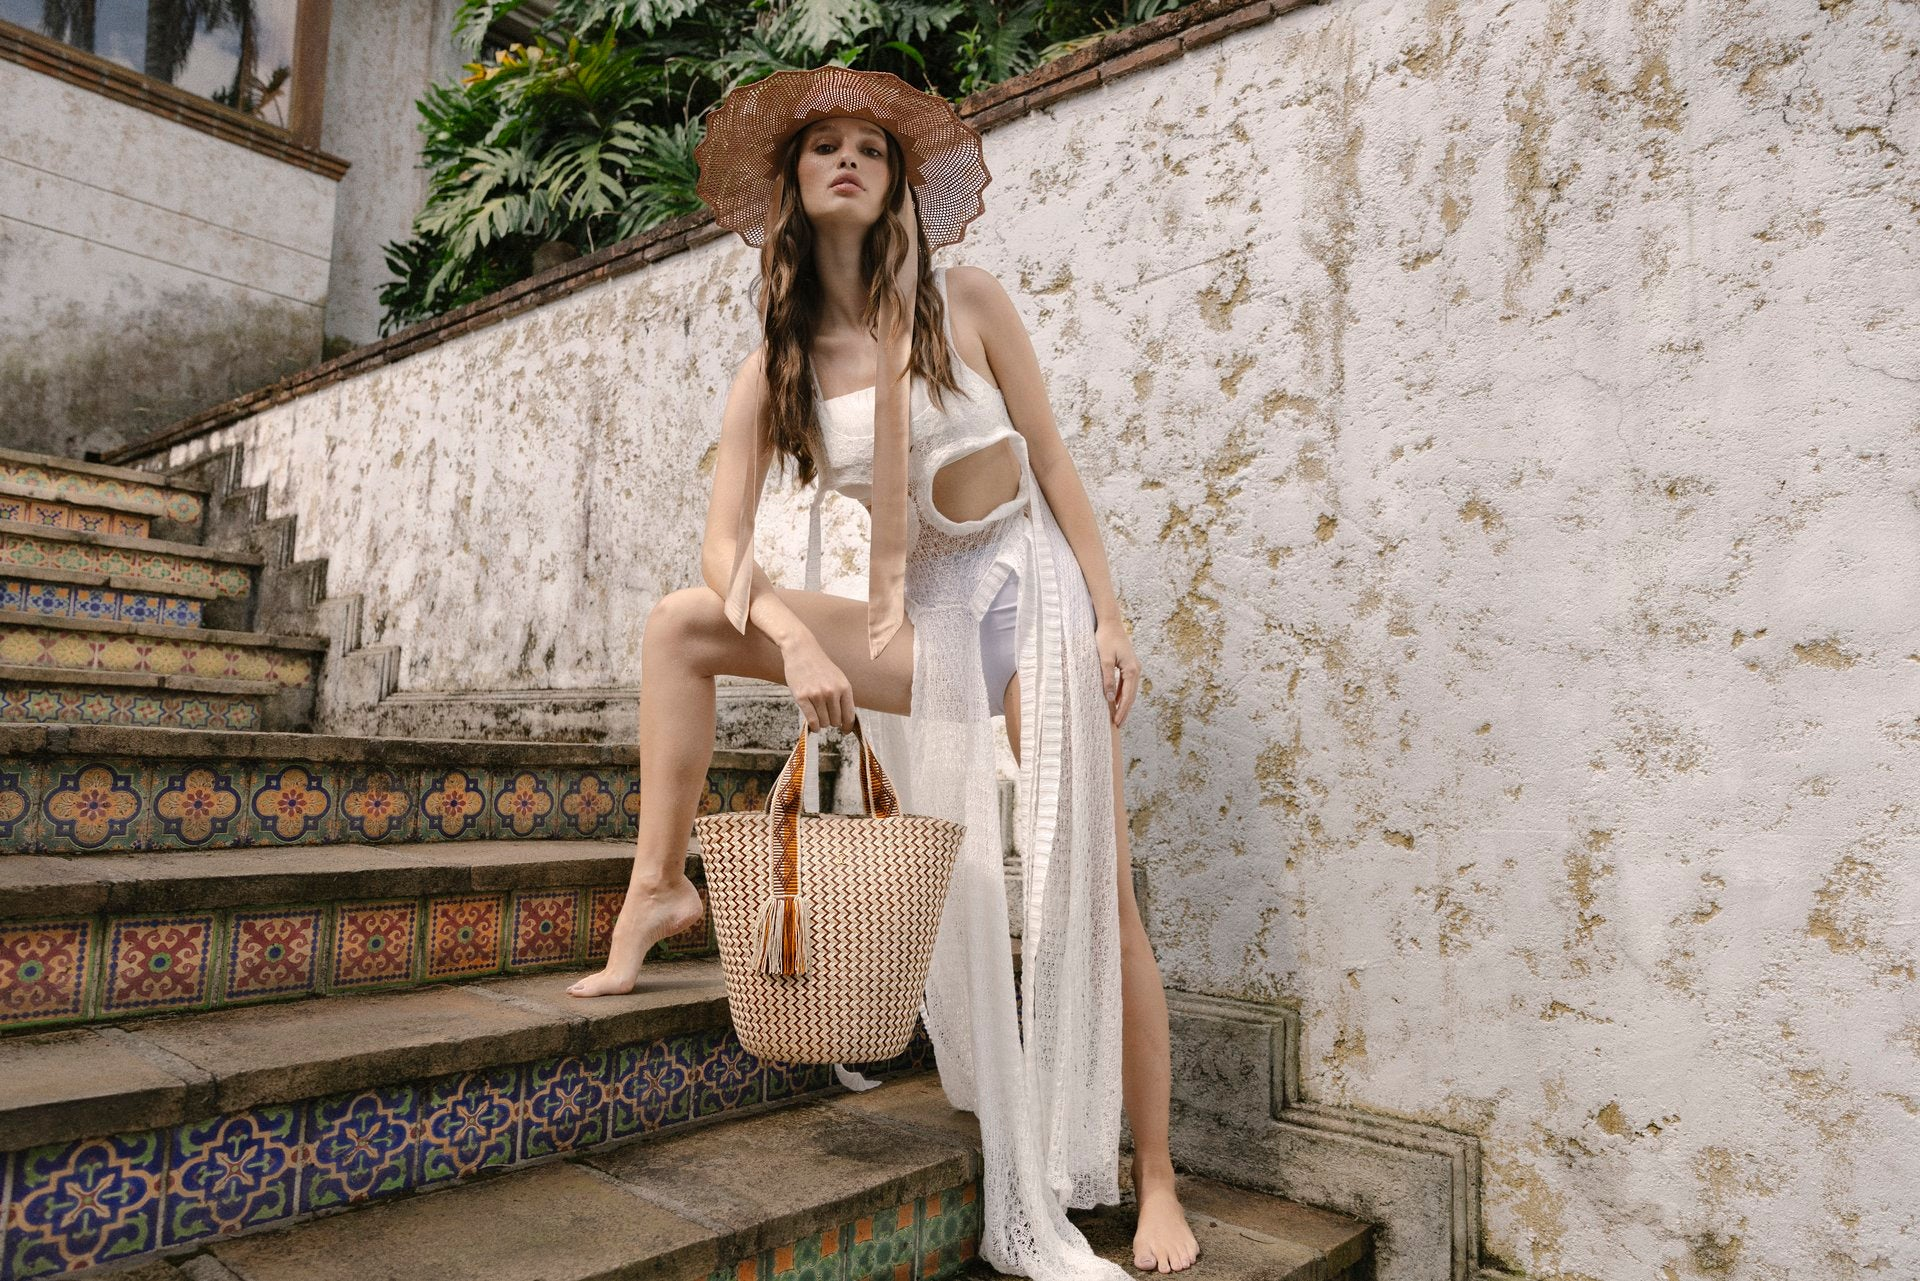 Yosuzi 2018 Womens Hats and Bags Campaign